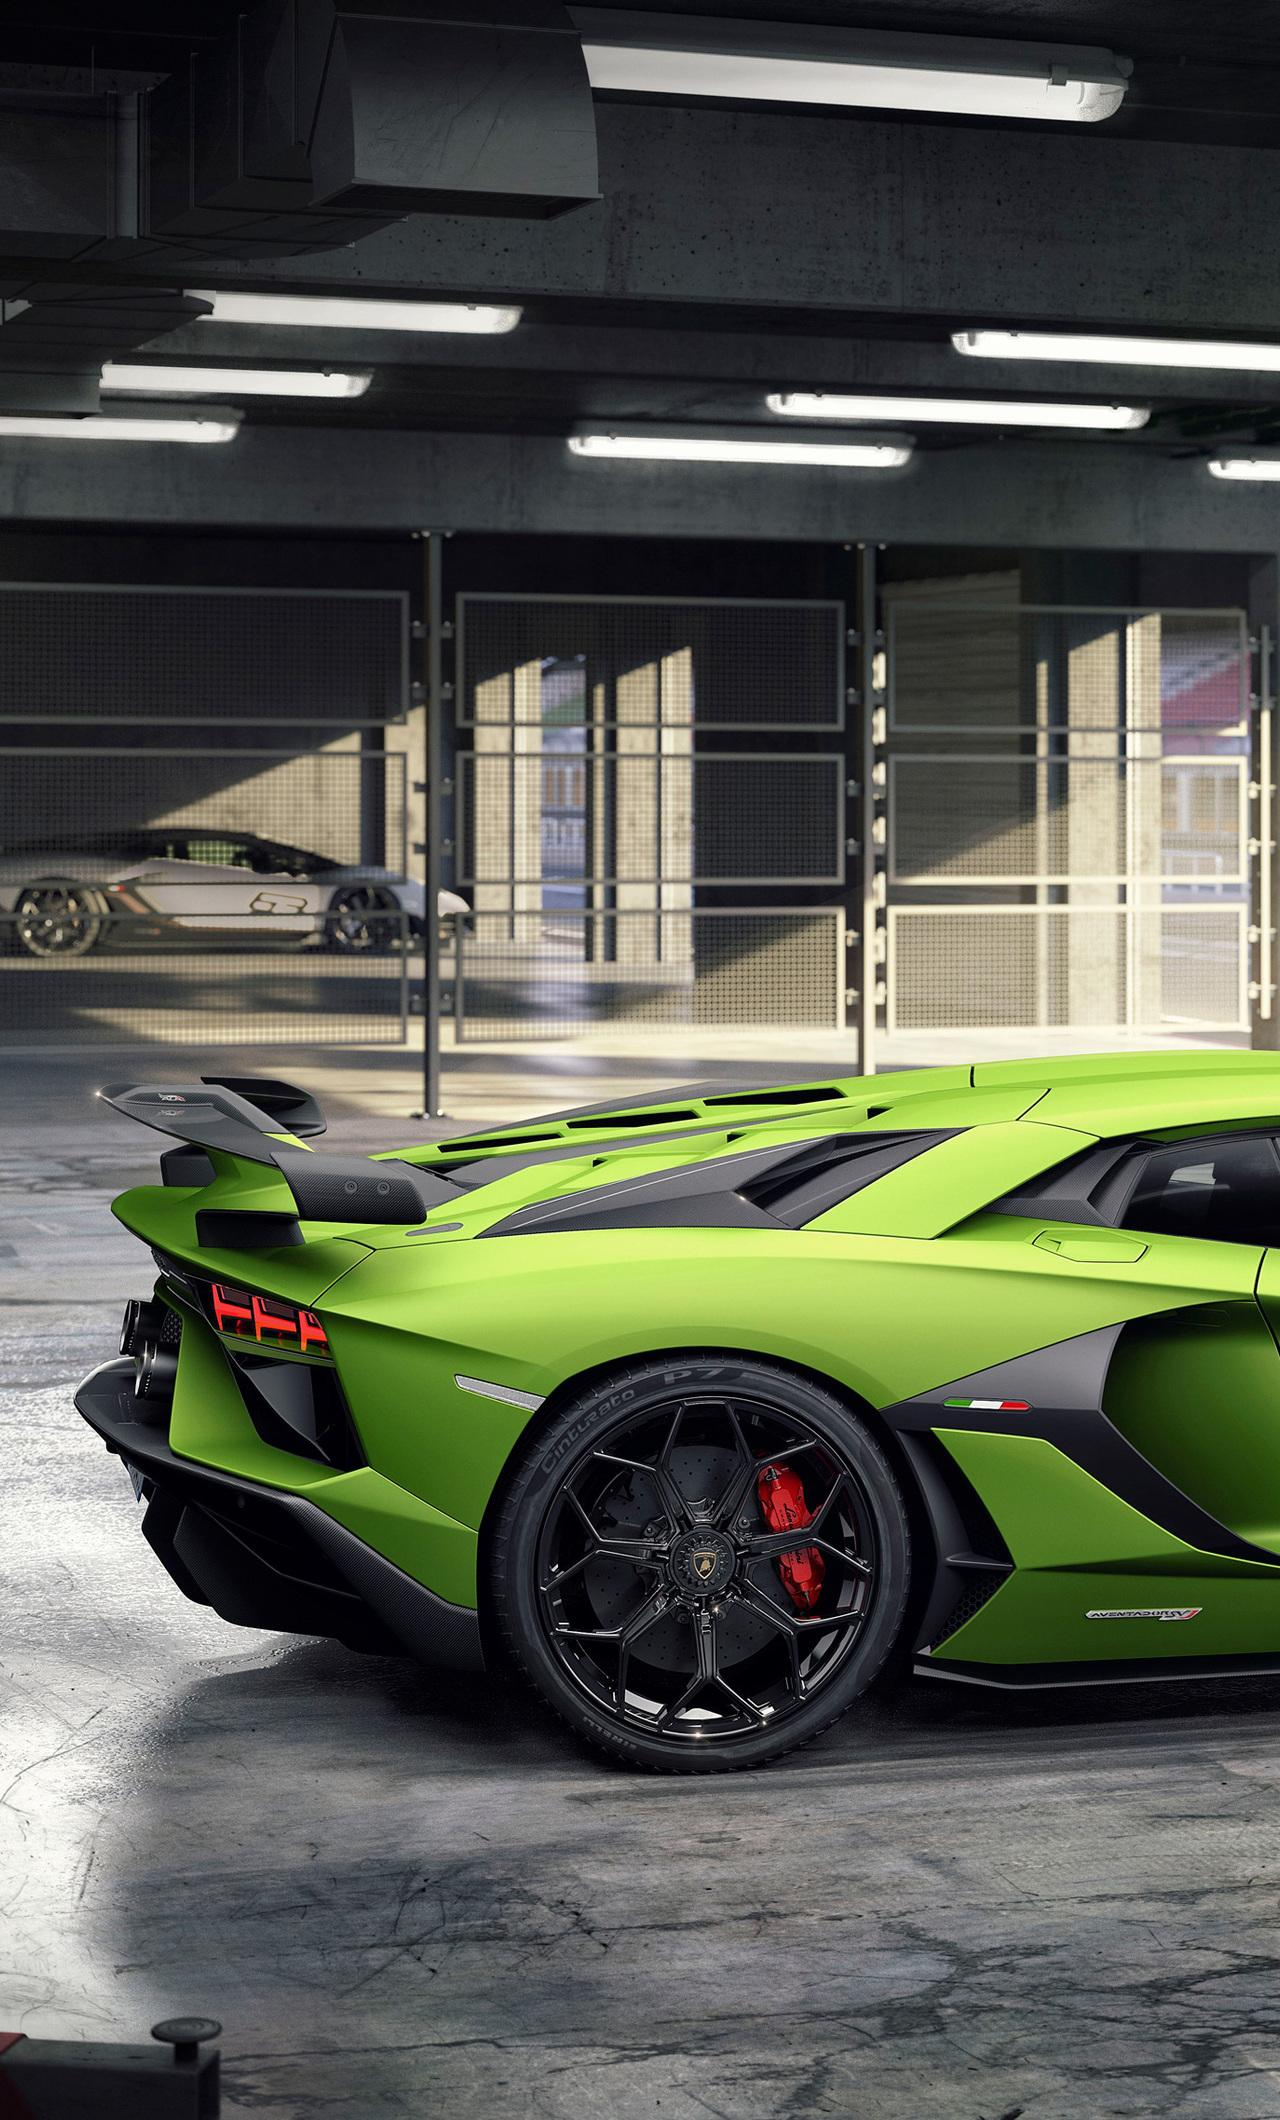 Lamborghini Aventador Svj 63 2019 4k 6 Wallpapers